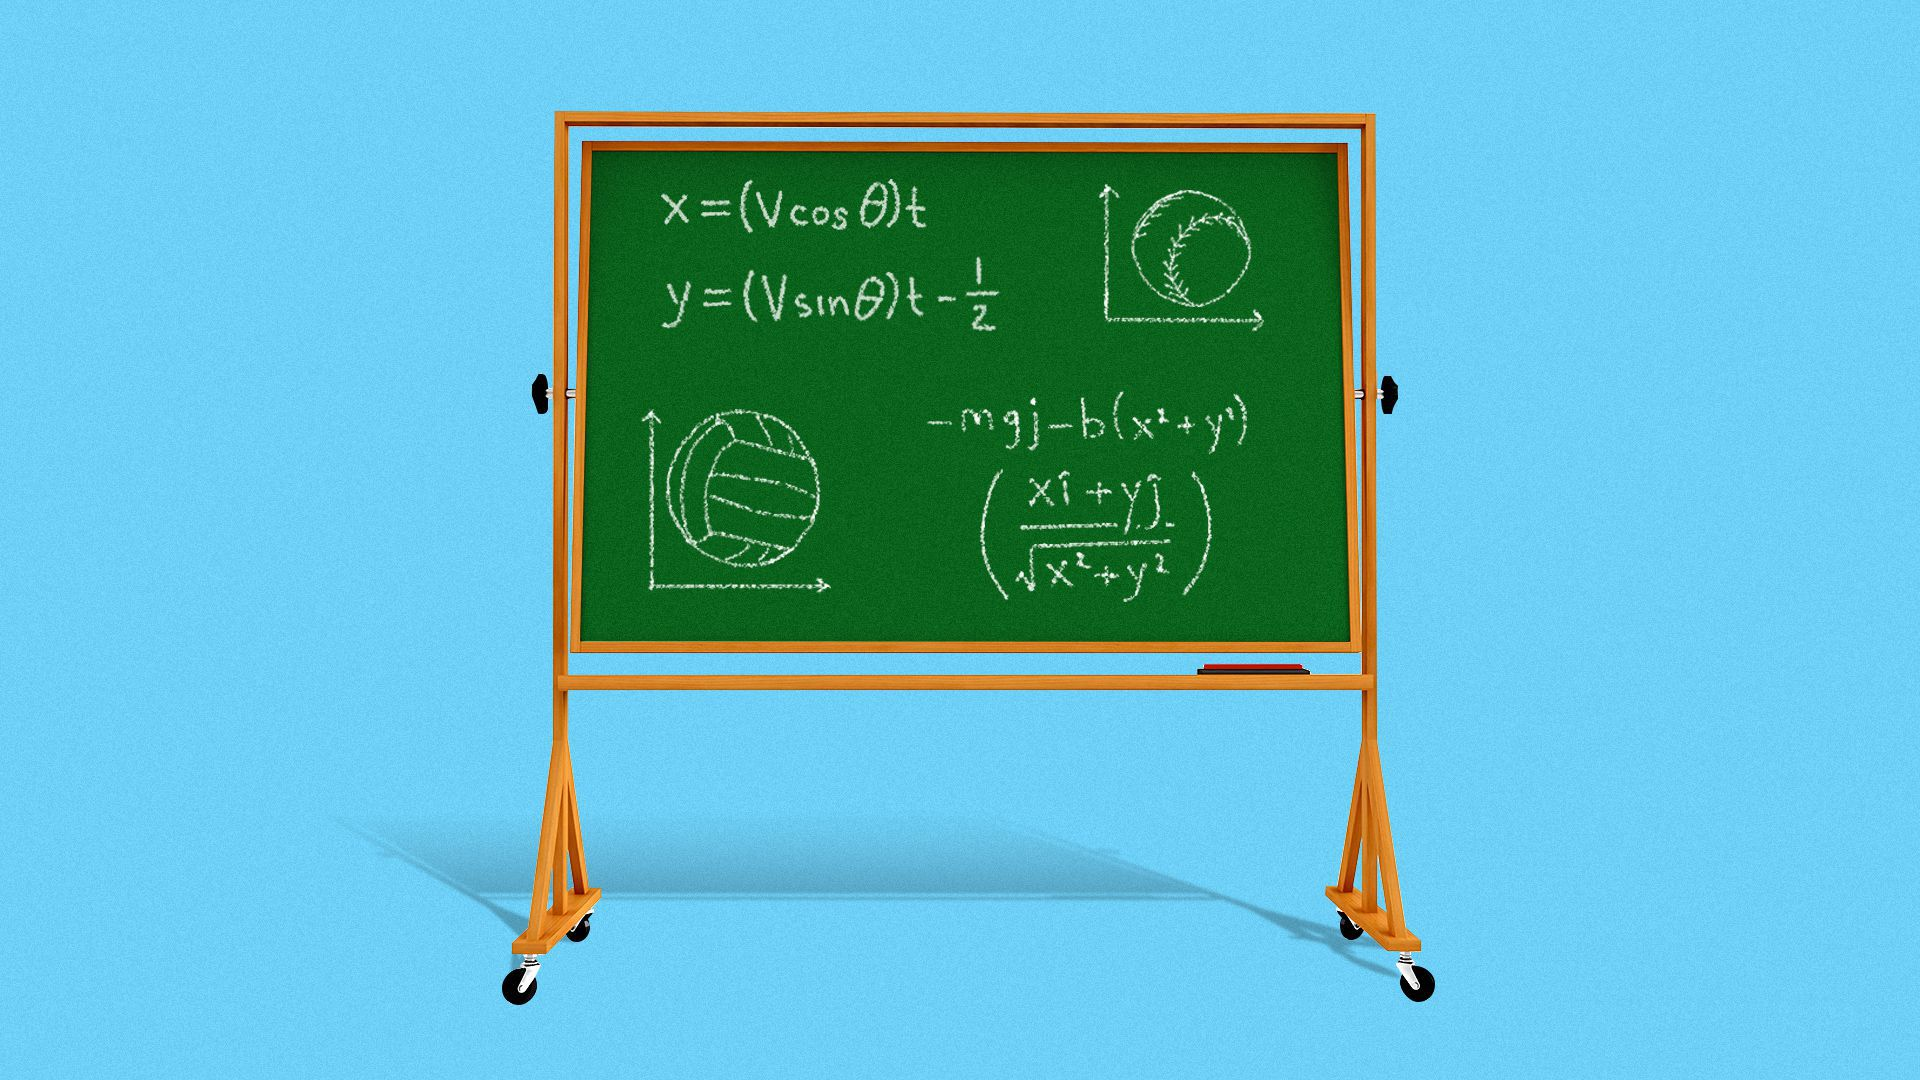 Illustration of a chalkboard with equations, a volleyball and a softball